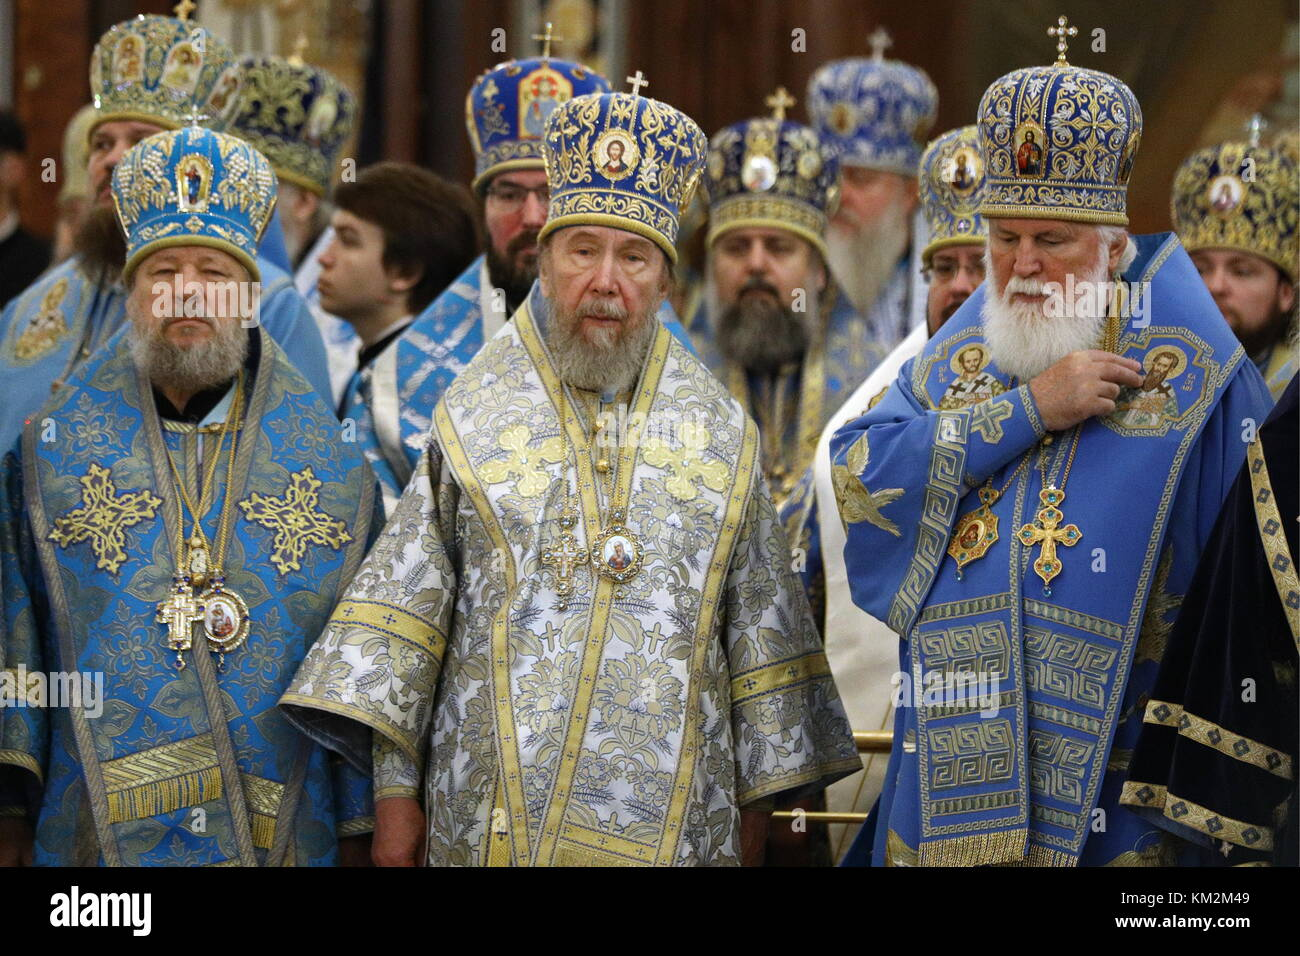 Moscow, Russia. 4th Dec, 2017. Archpriests of the Russian Orthodox Church - Metropolitan Vladimir of Chisinau and - Stock Image